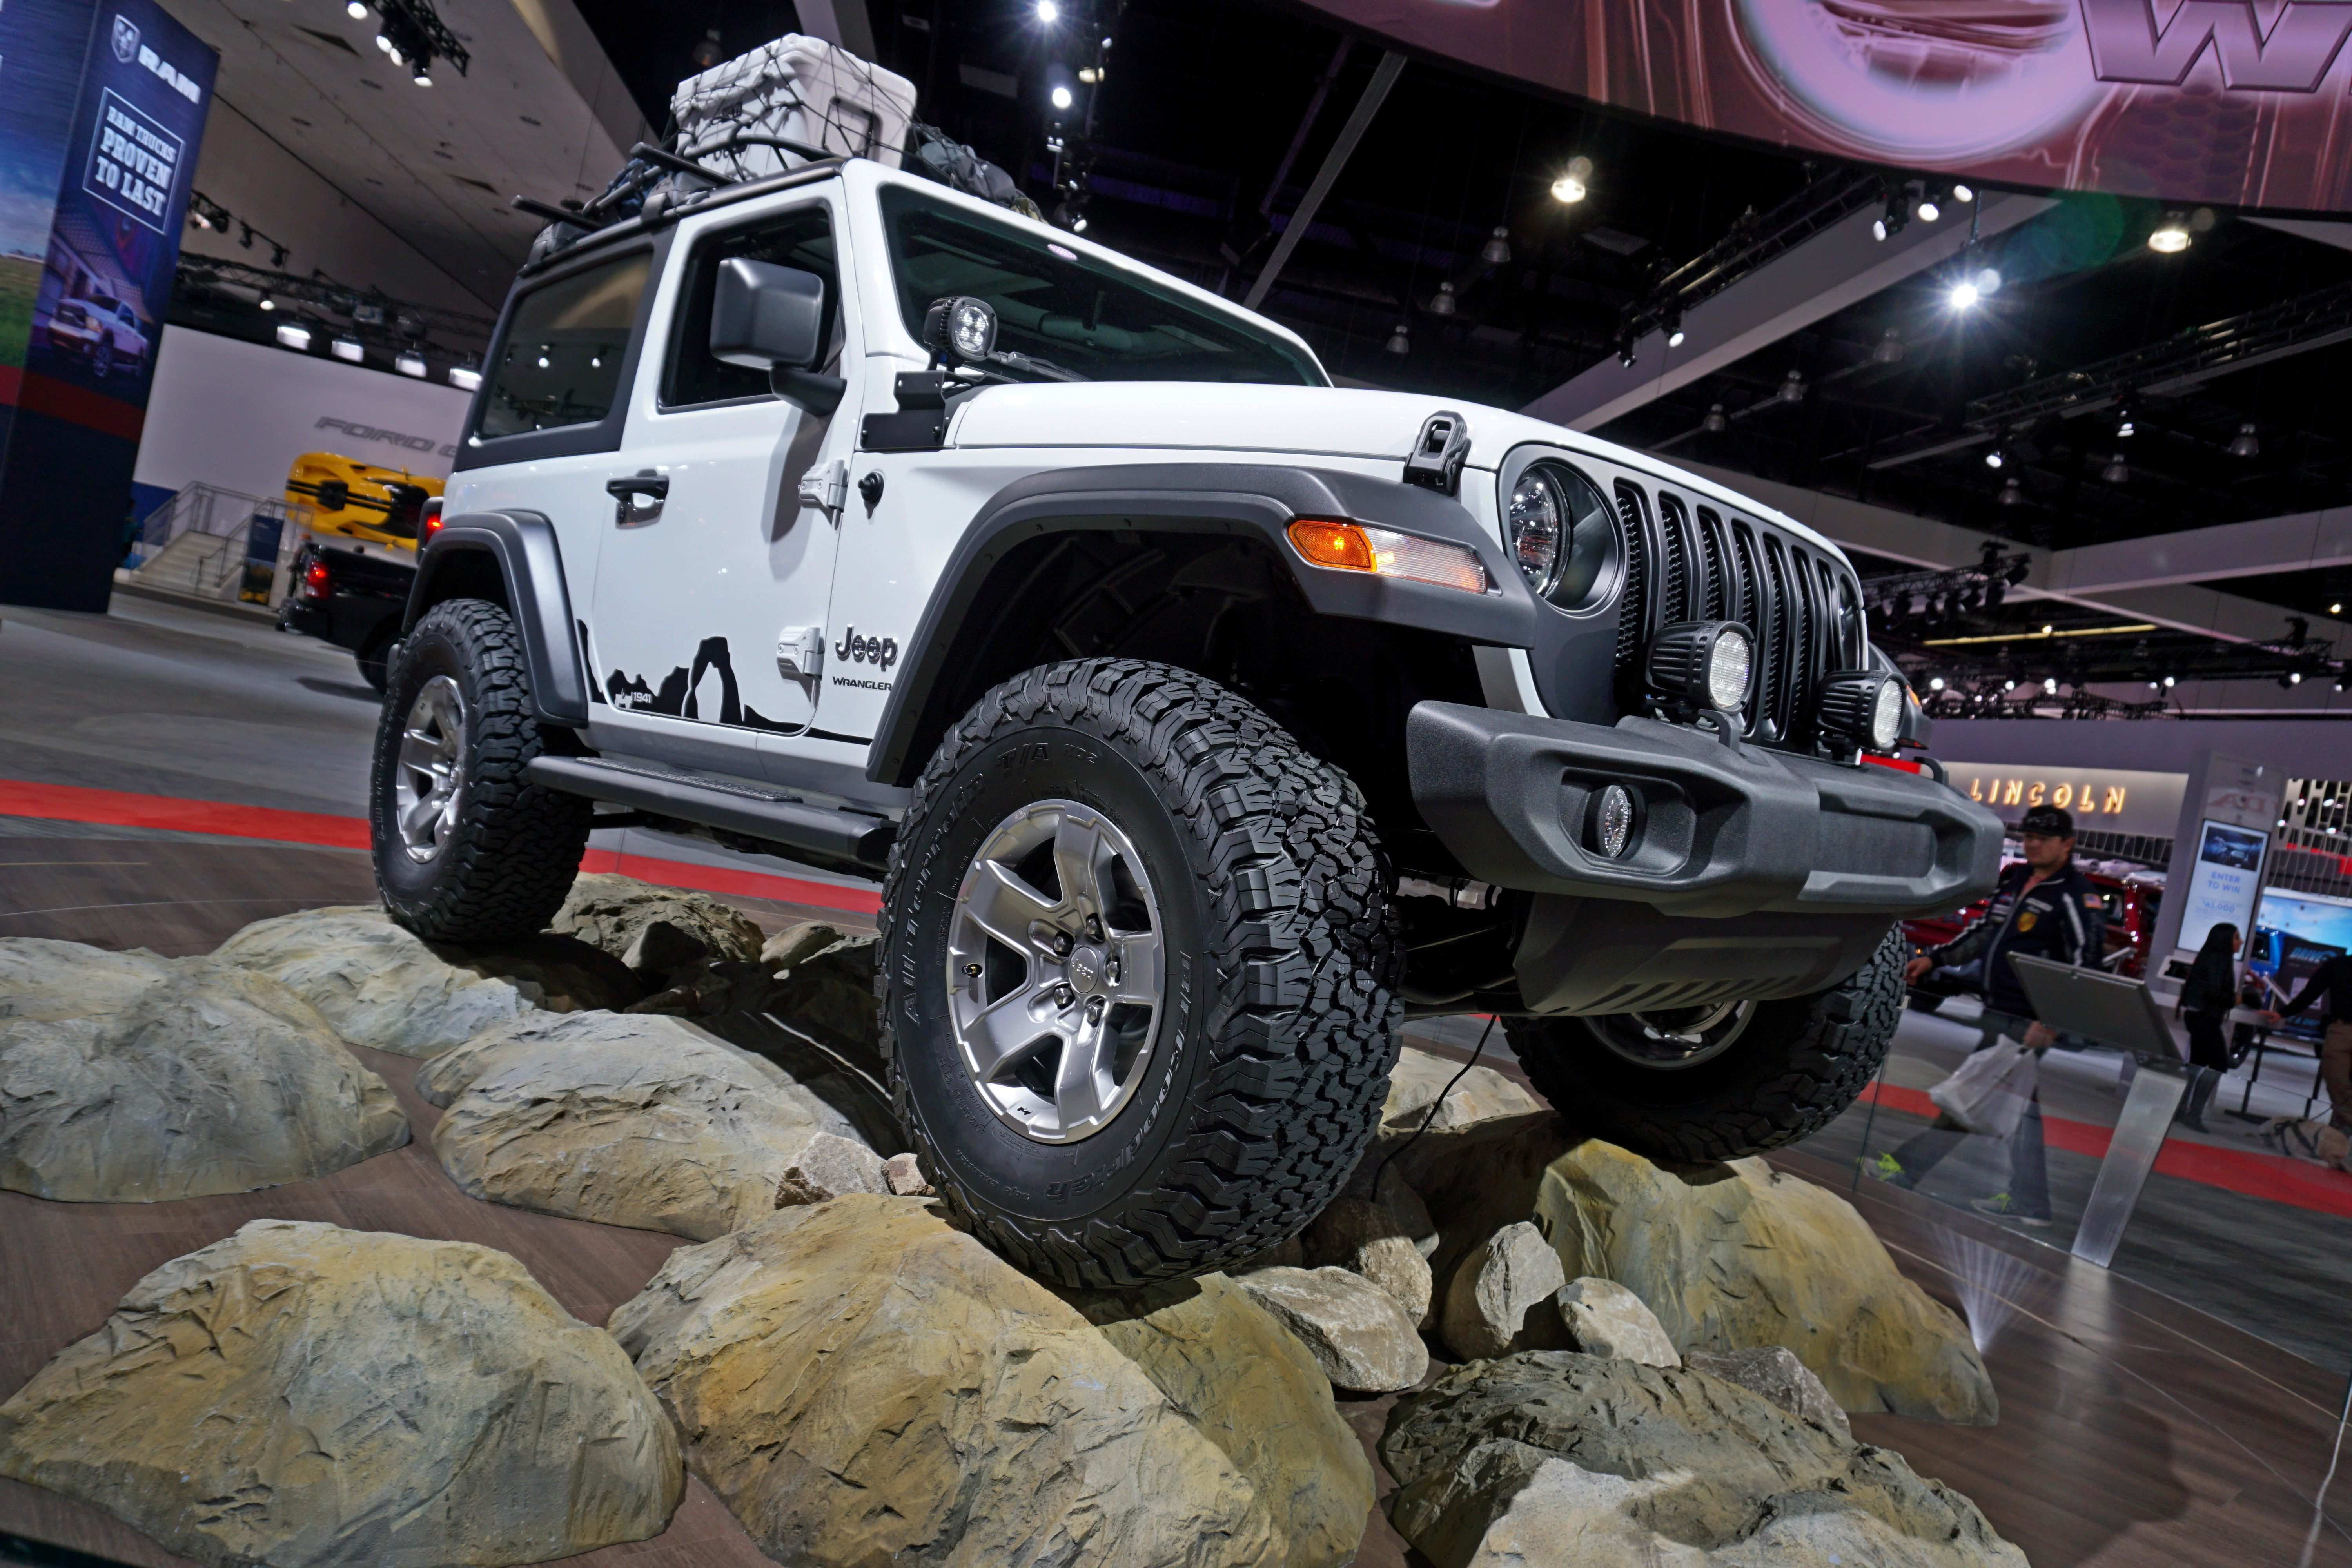 63 Gallery of 2019 Jeep Wrangler Diesel Price and Review by 2019 Jeep Wrangler Diesel